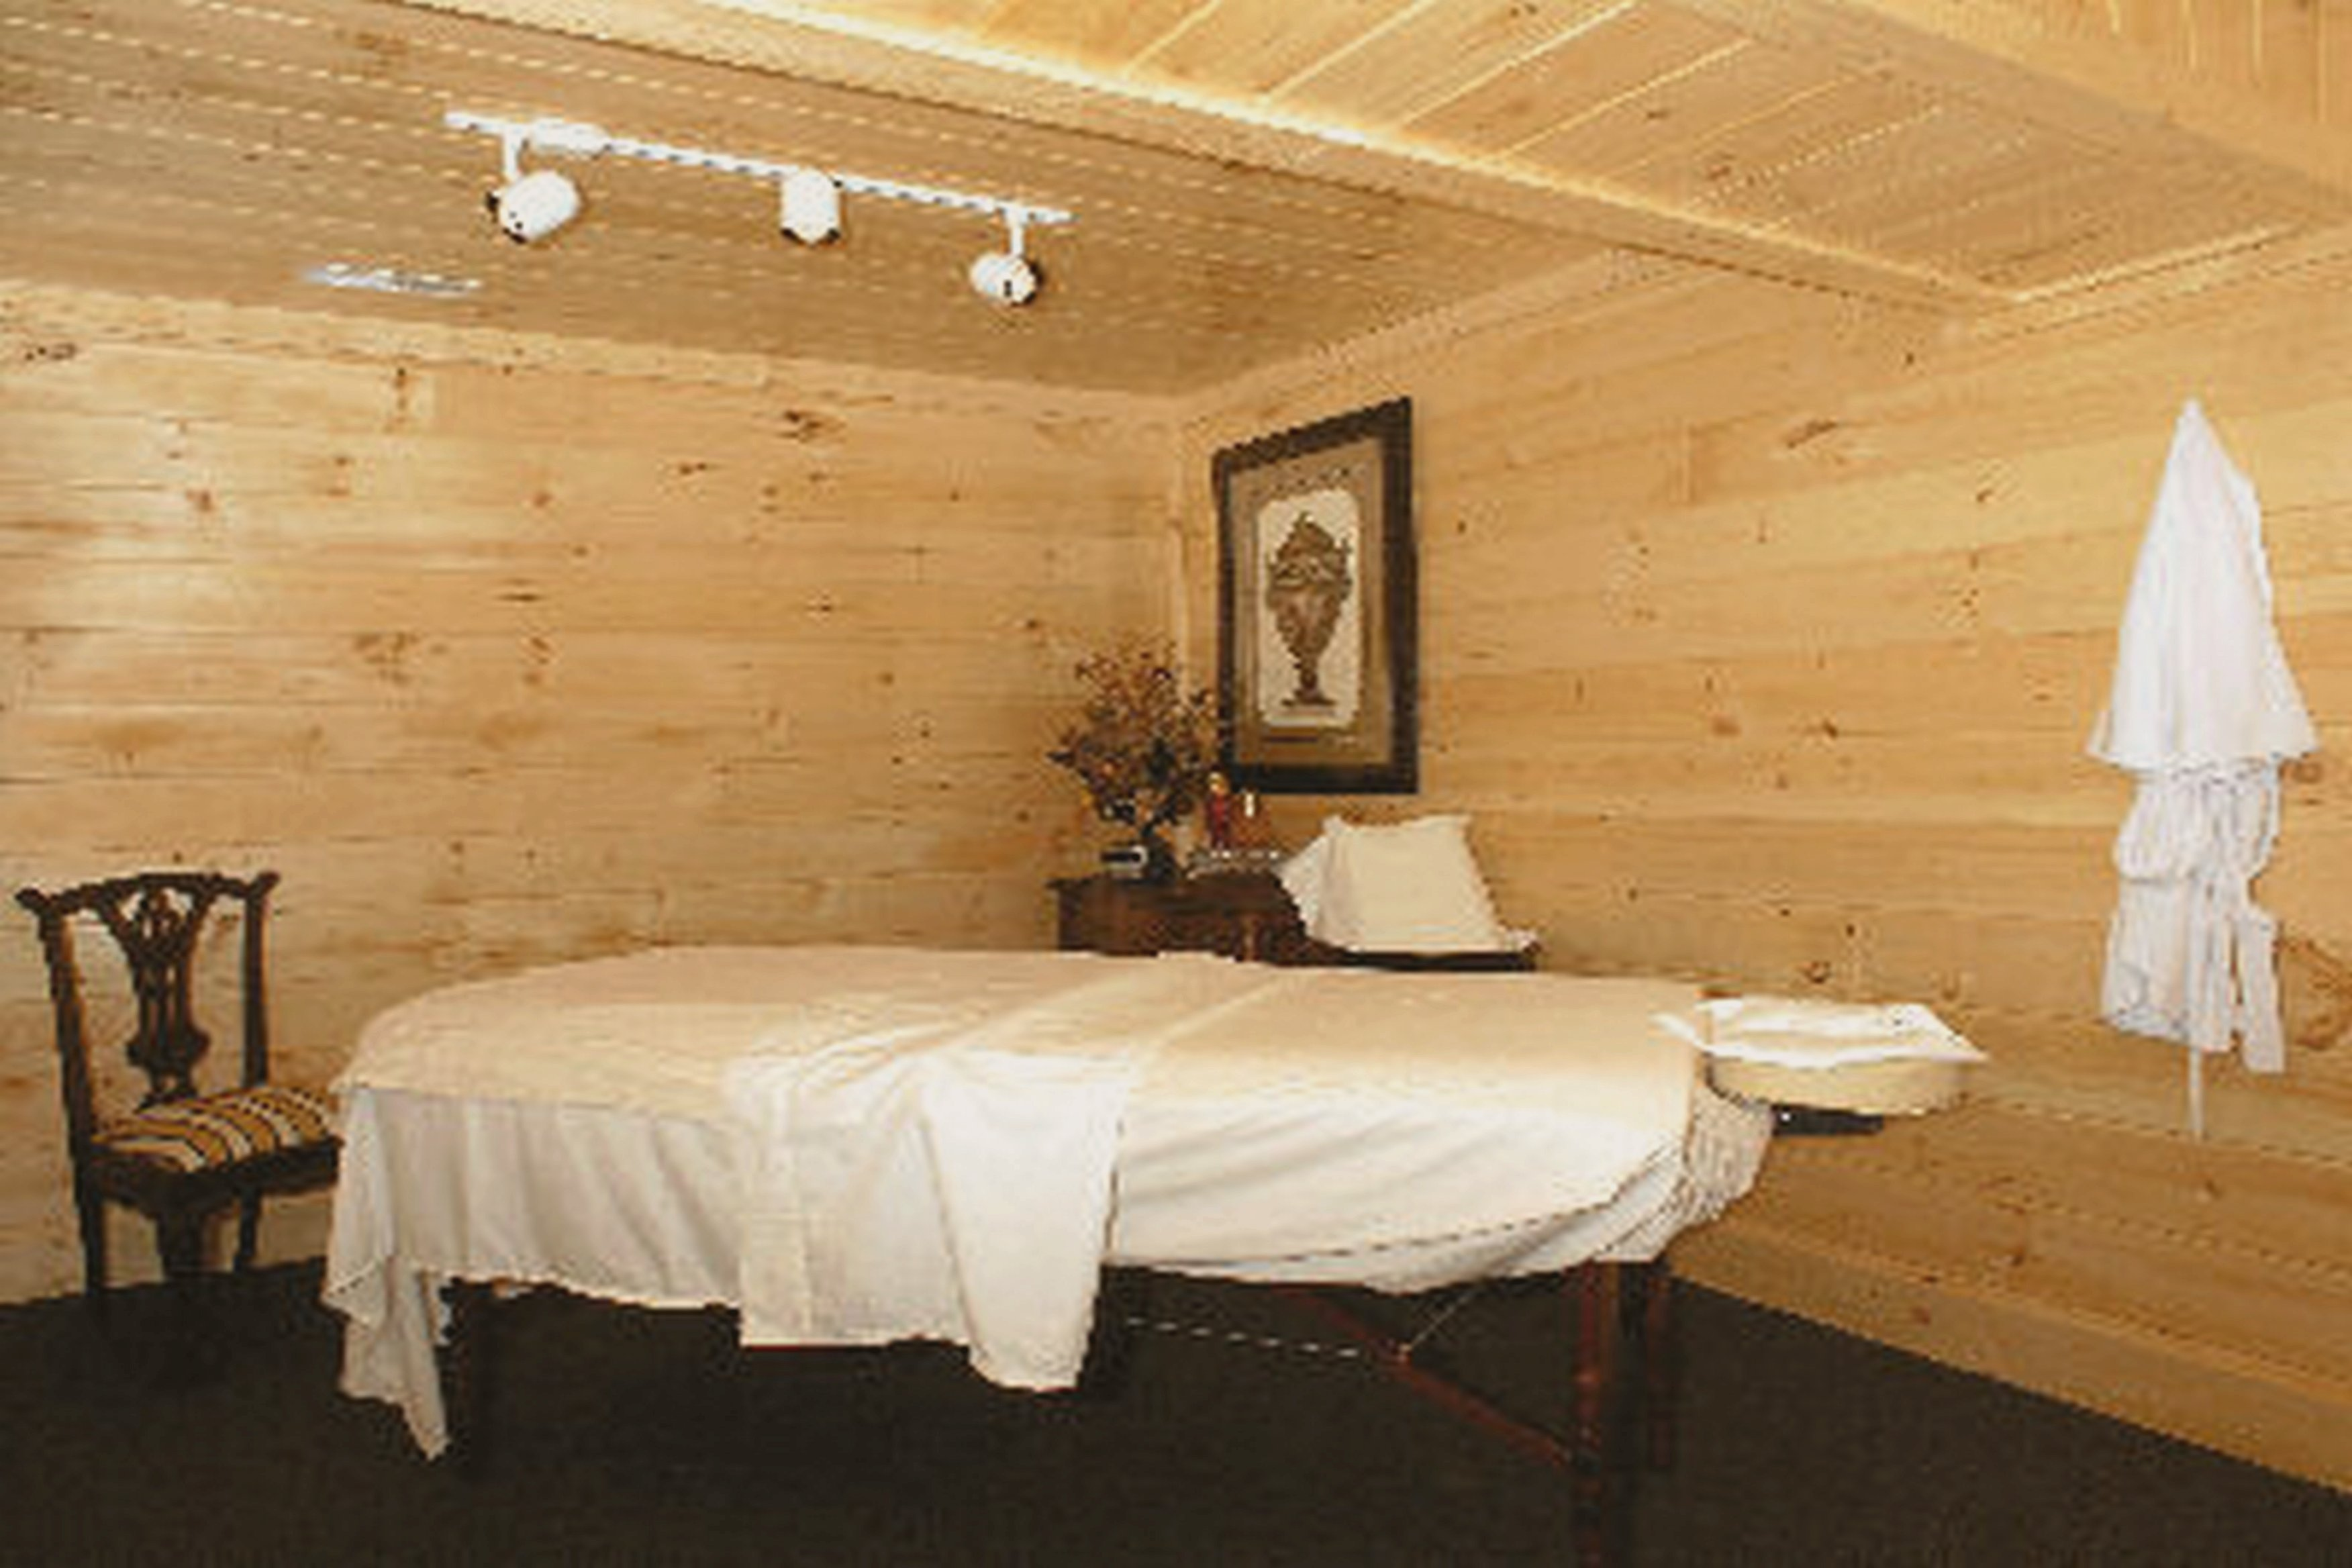 cabins us mountain destinations wears in valley east tennesse accommodation features natural retreats united magic states